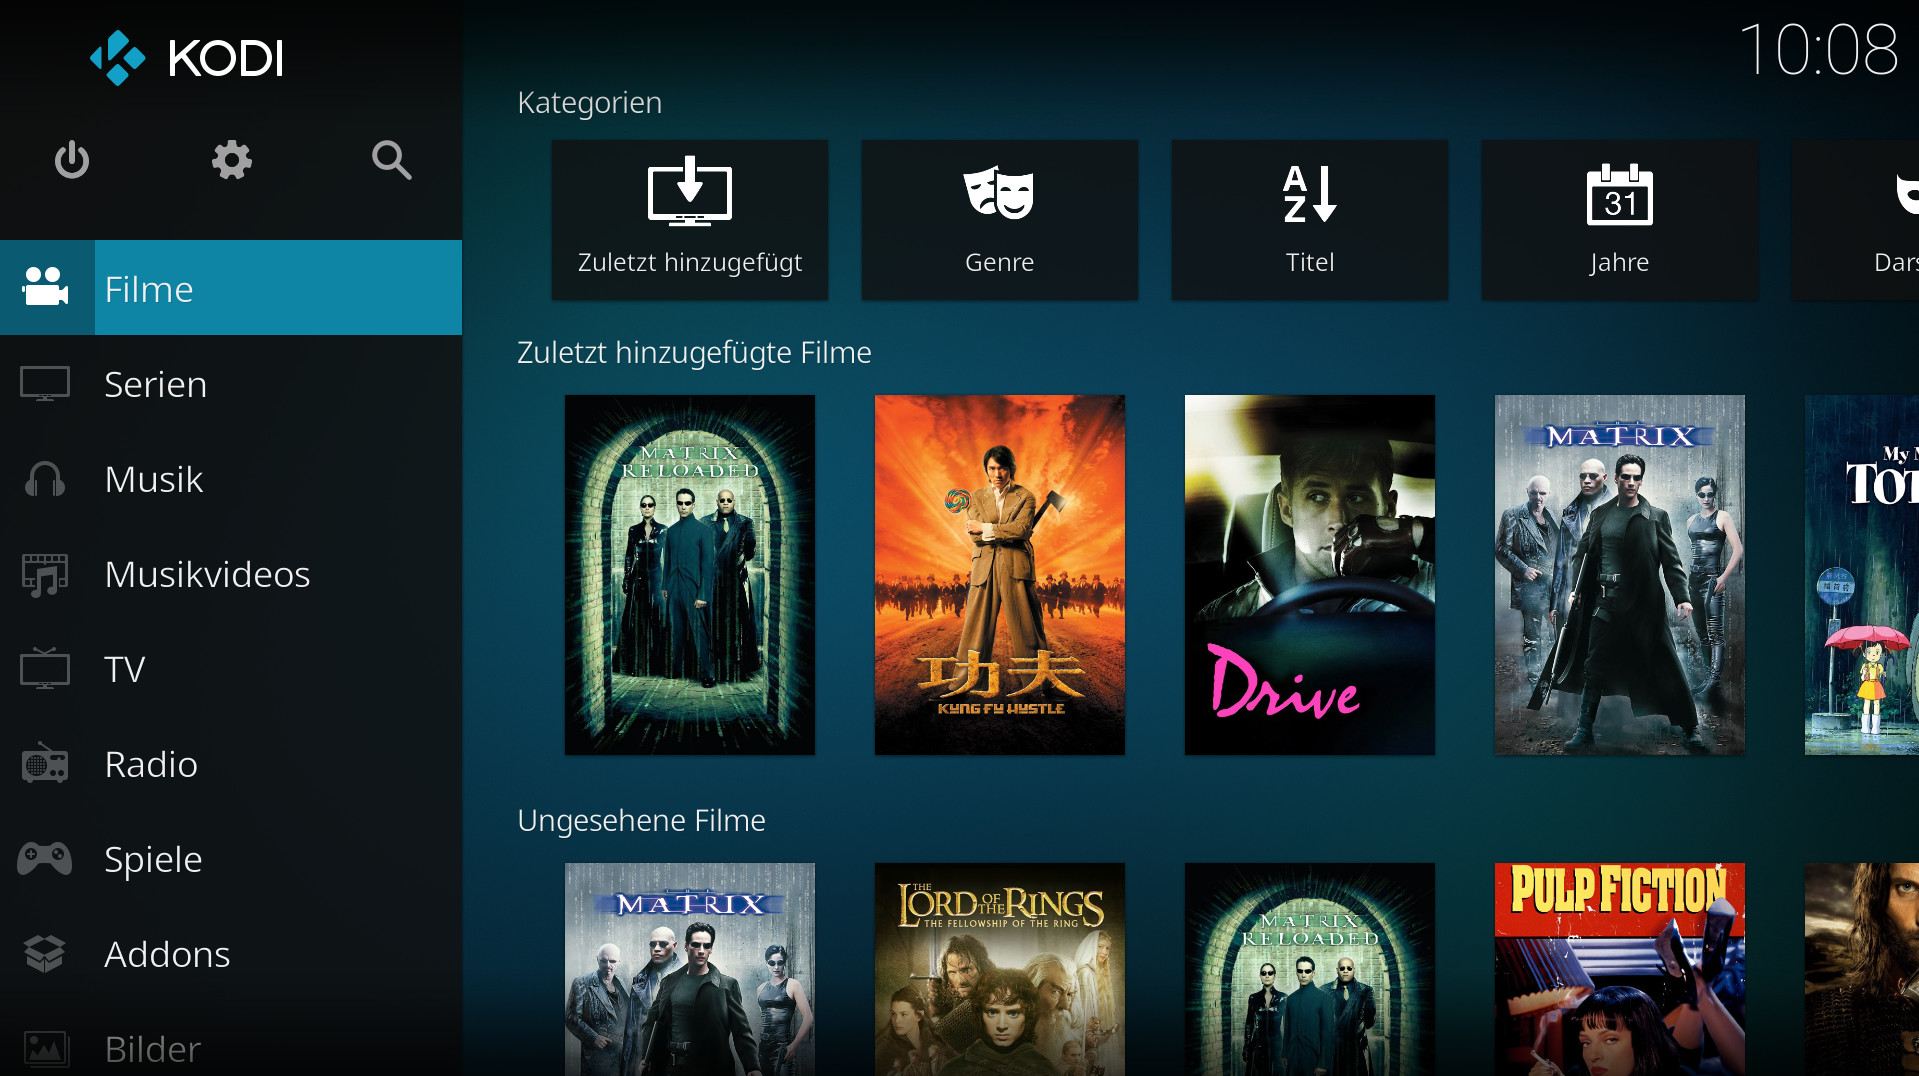 Screenshot 1 - Kodi (Linux)